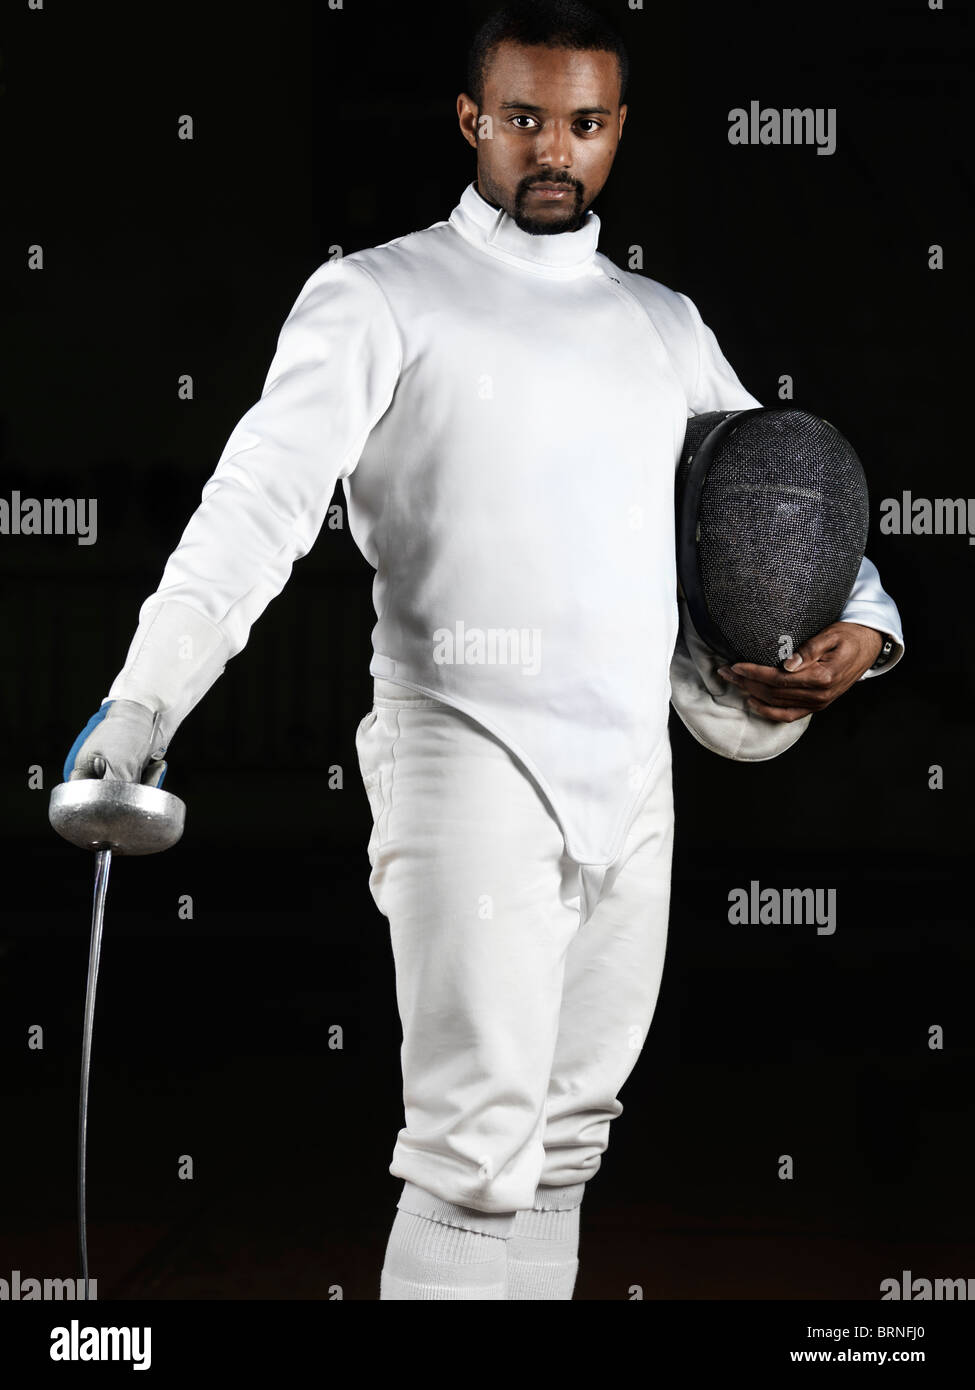 Portrait of a fencer wearing fencing uniform and holding an epee and a mask isolated on black background - Stock Image